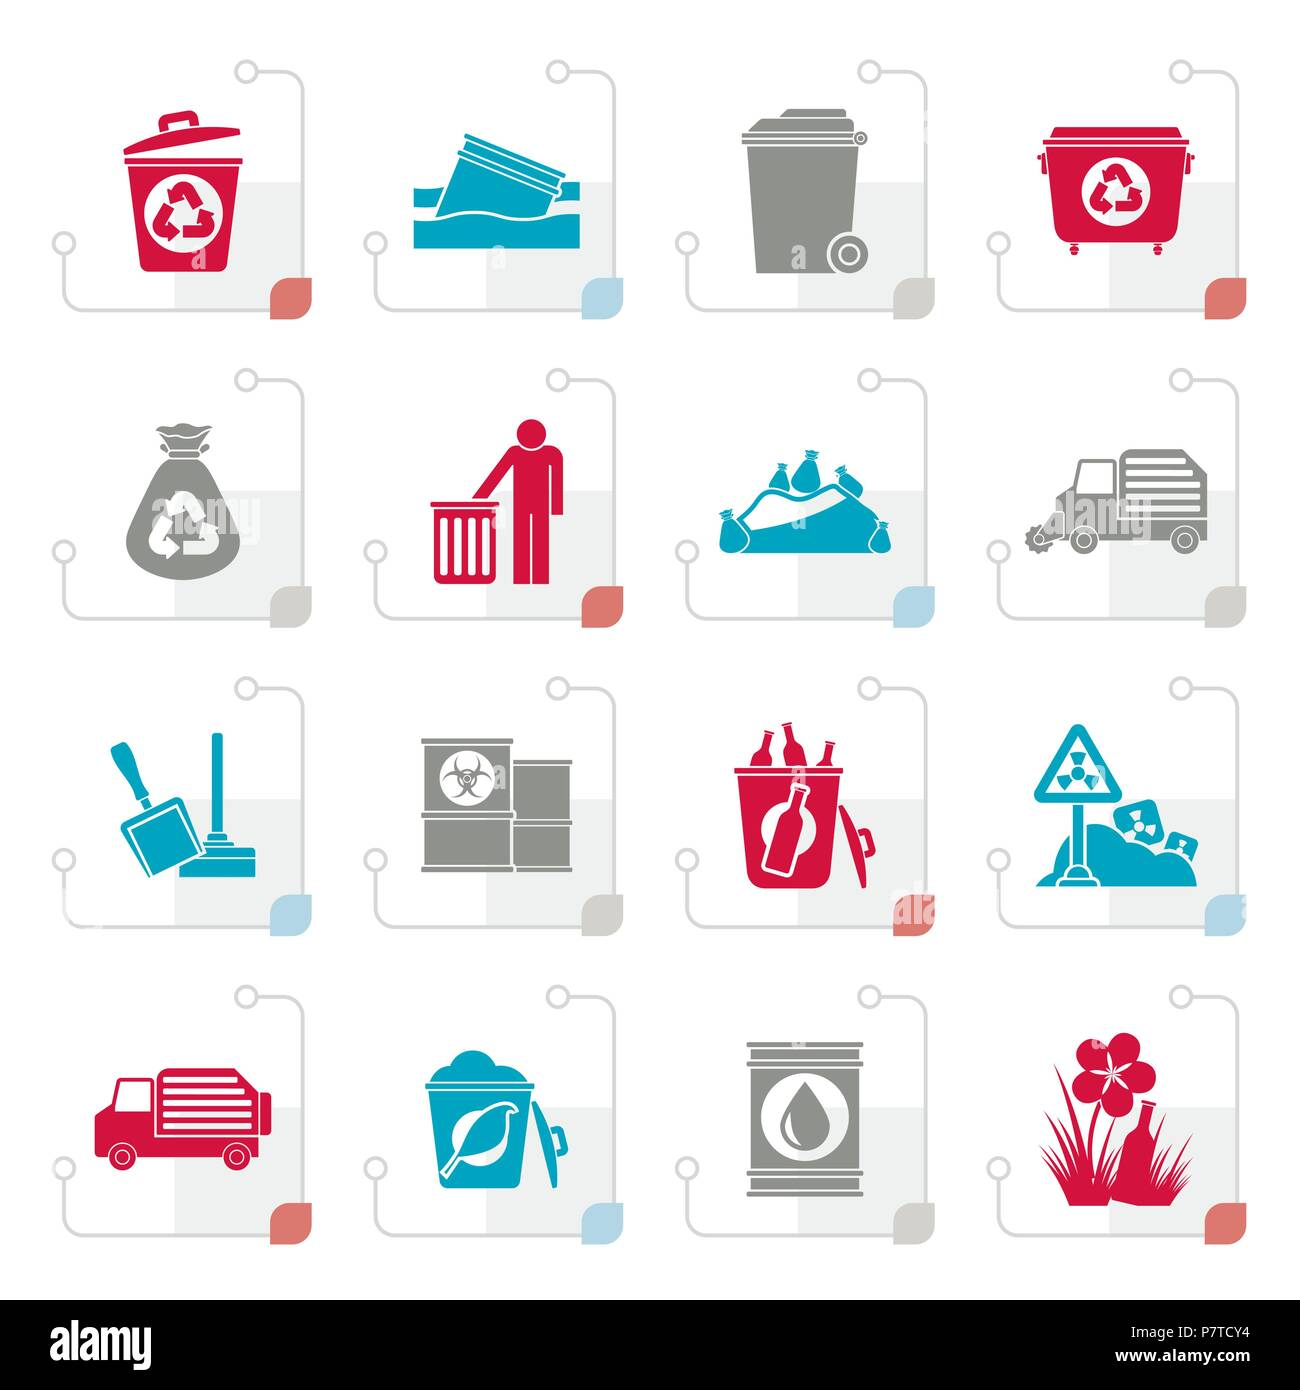 Stylized Garbage and rubbish icons - vector icon set - Stock Vector